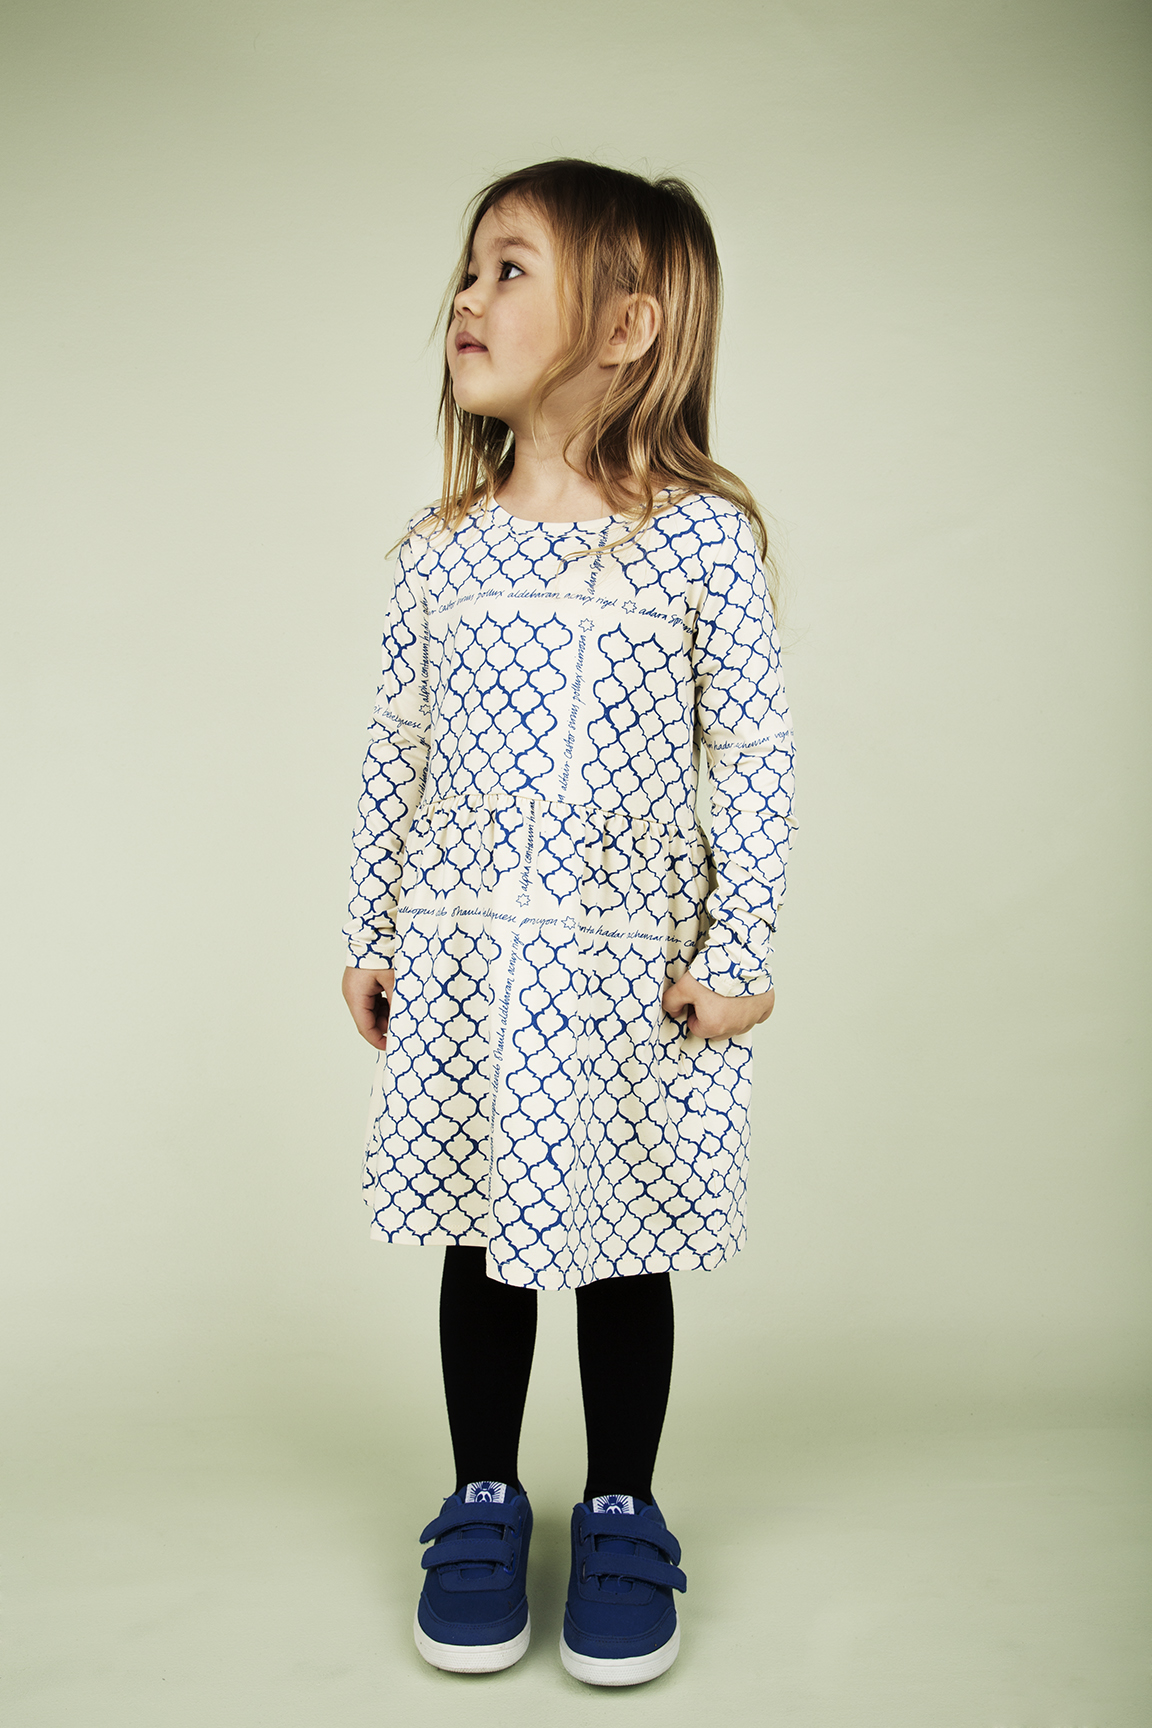 Mini_rodinni_aw15_dress_mosquito